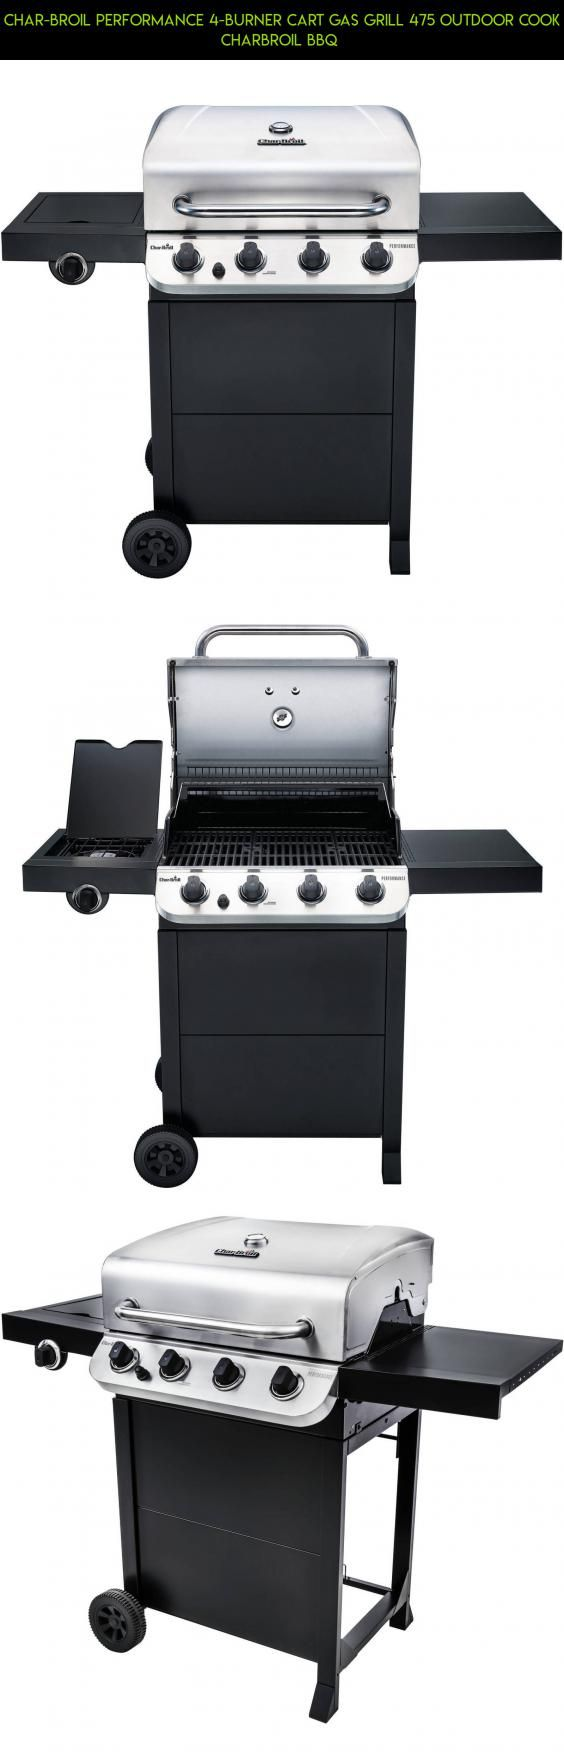 Char-Broil Performance 4-Burner Cart Gas Grill 475 Outdoor Cook Charbroil BBQ  #gadgets #fpv #parts #plans #kit #technology #camera #products #cart #outdoor #drone #tech #racing #shopping #cooking